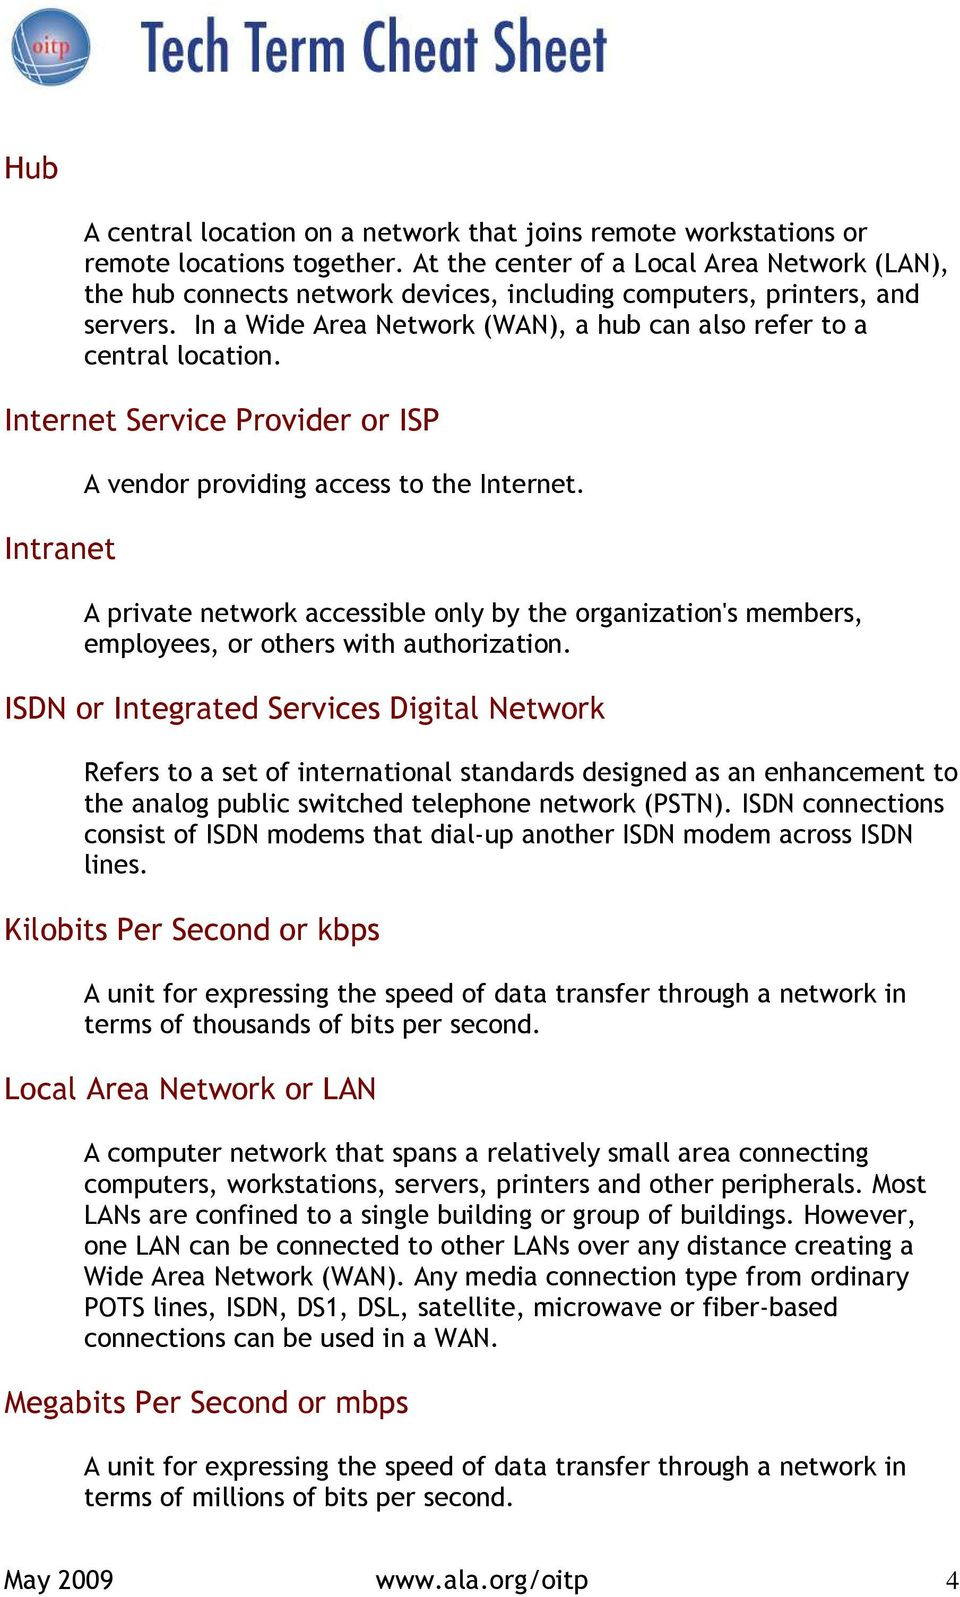 Internet Service Provider or ISP Intranet A vendor providing access to the Internet. A private network accessible only by the organization's members, employees, or others with authorization.